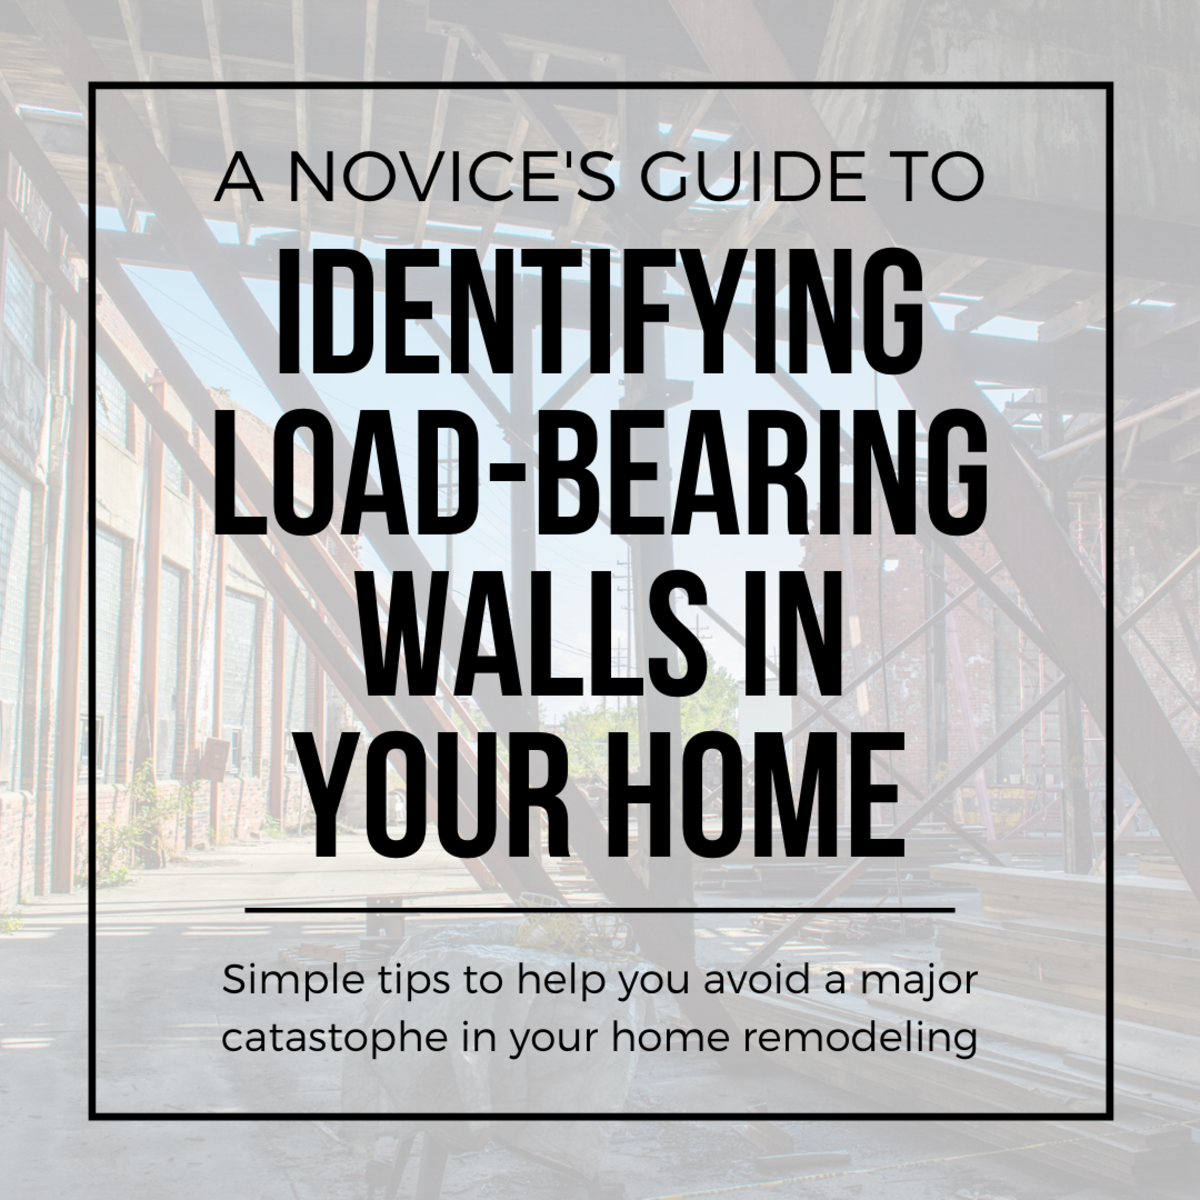 This guide will help you identify load-bearing walls in your home, which could help you avoid accidentally causing major damage to your house.